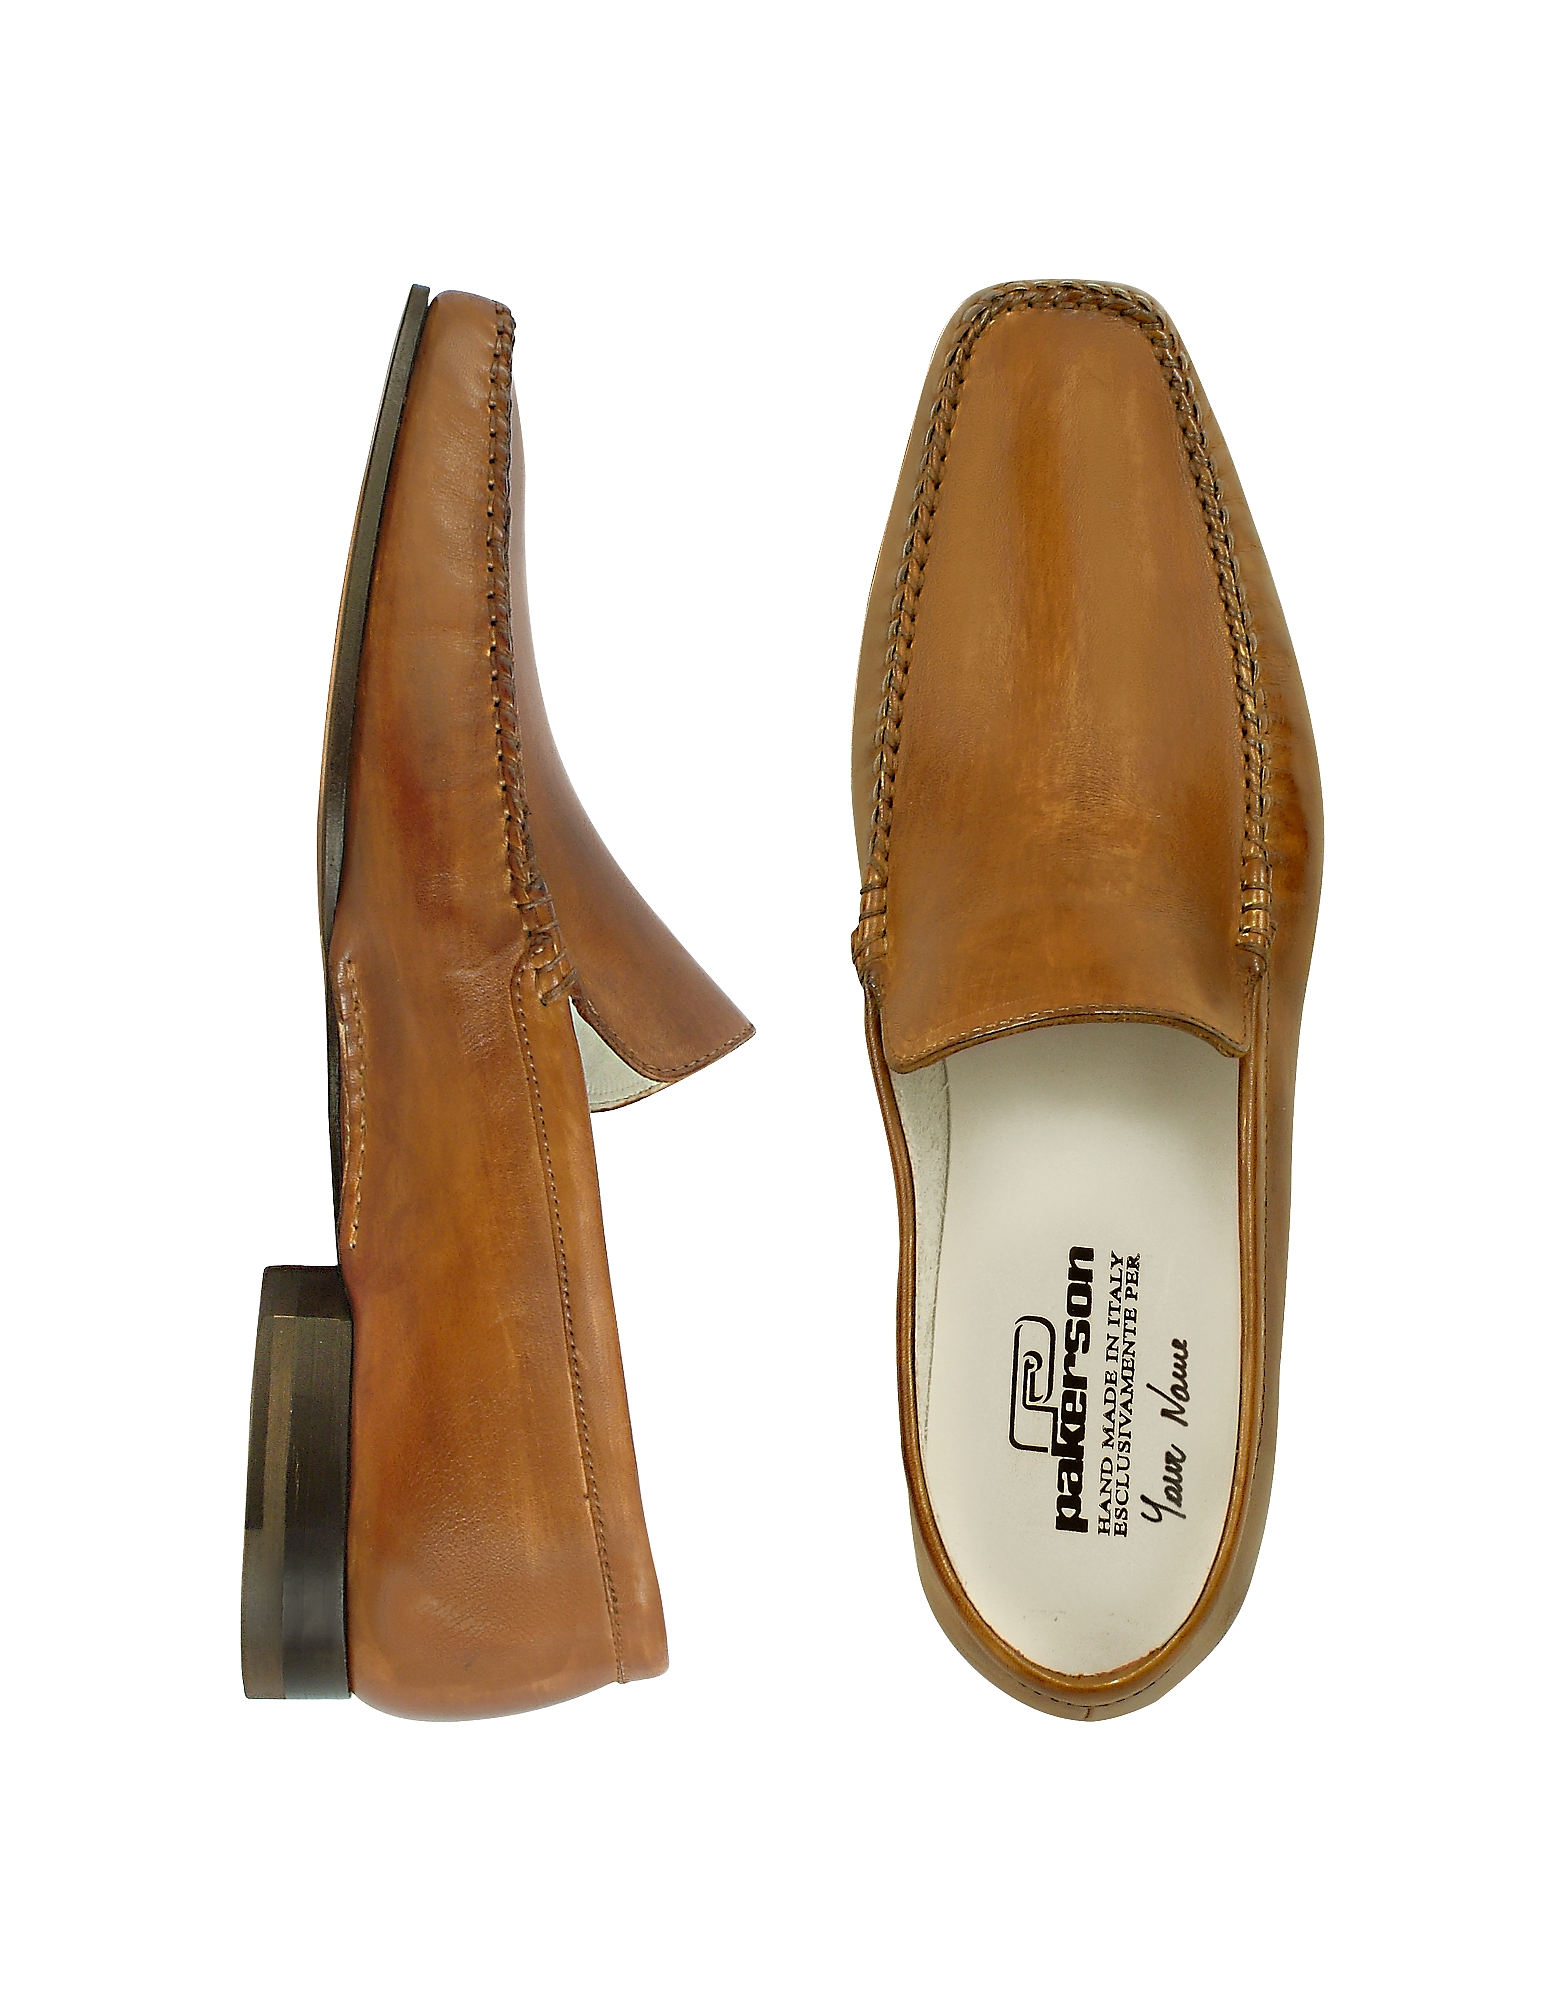 Pakerson Shoes, Brown Italian Handmade Leather Loafer Shoes